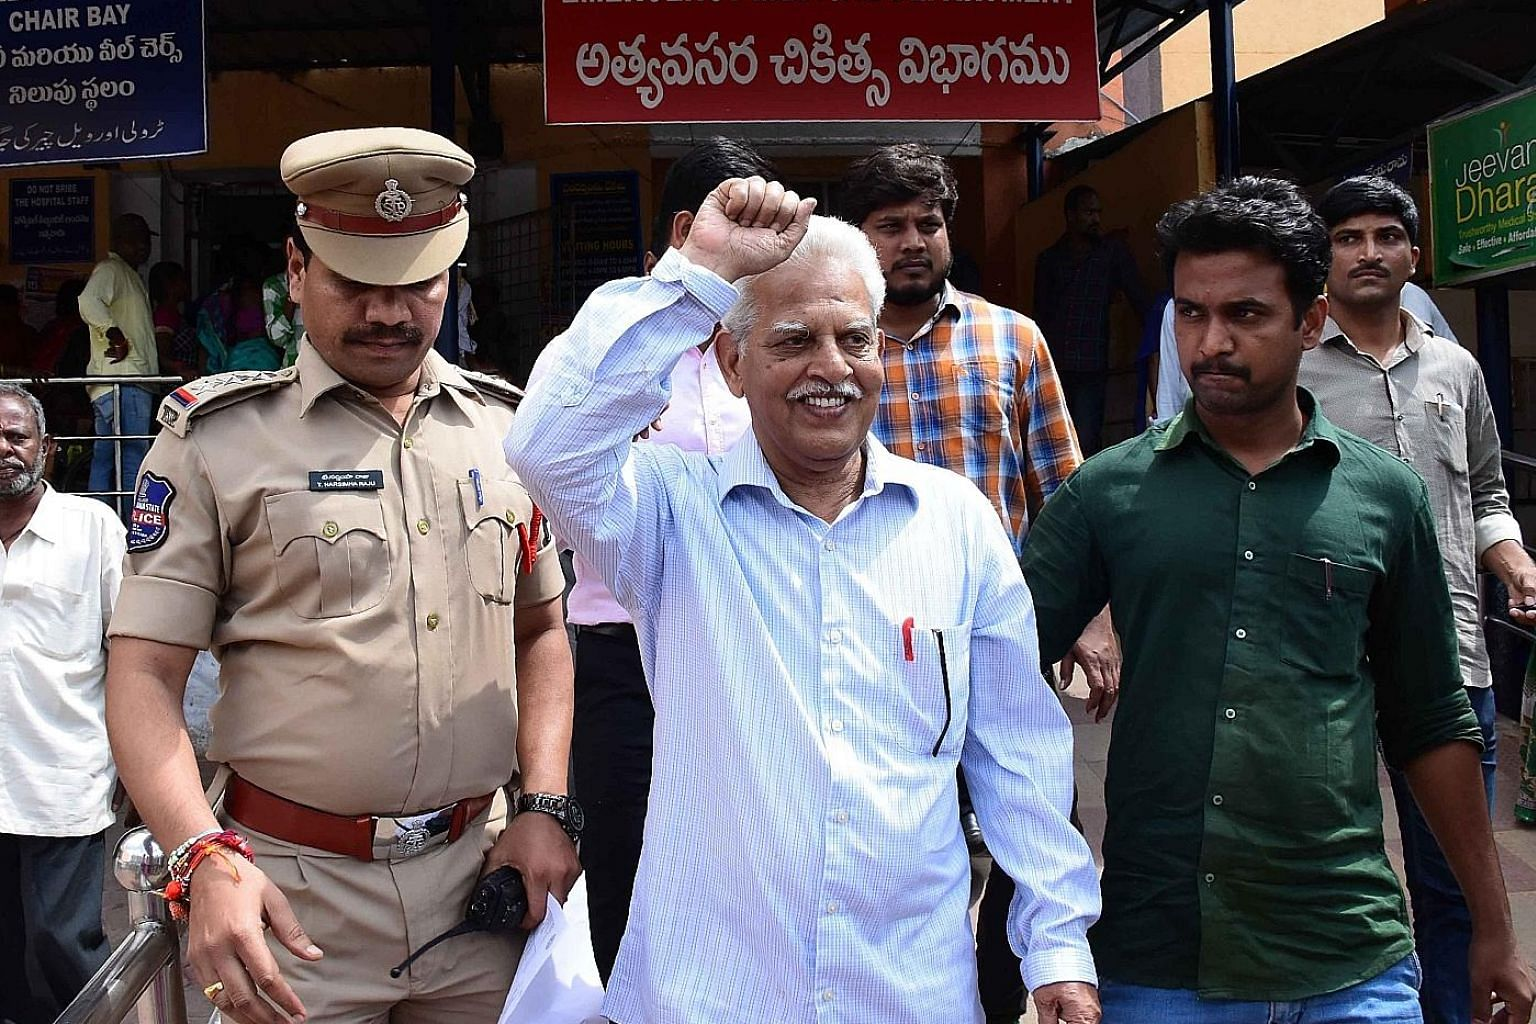 Communist writer and poet P. Varavara Rao, who was arrested on Tuesday in Hyderabad, India, was one of the five activists nabbed.